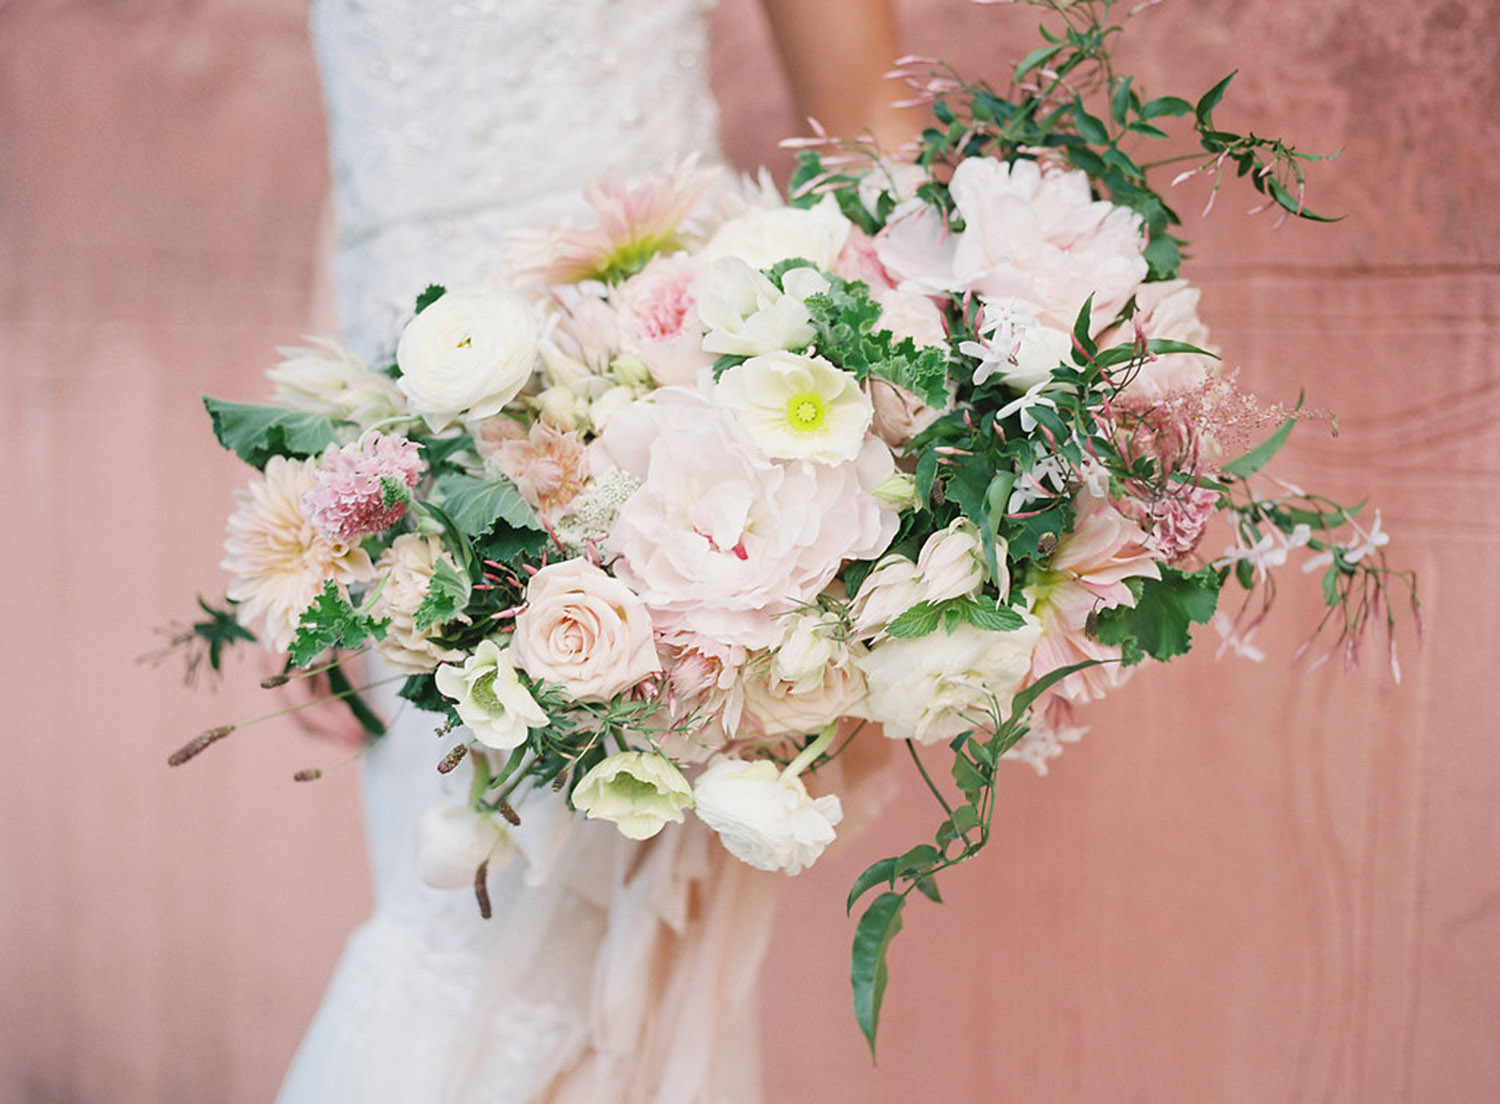 bride holding a white and pink bouquet standing against a pink wall in spring